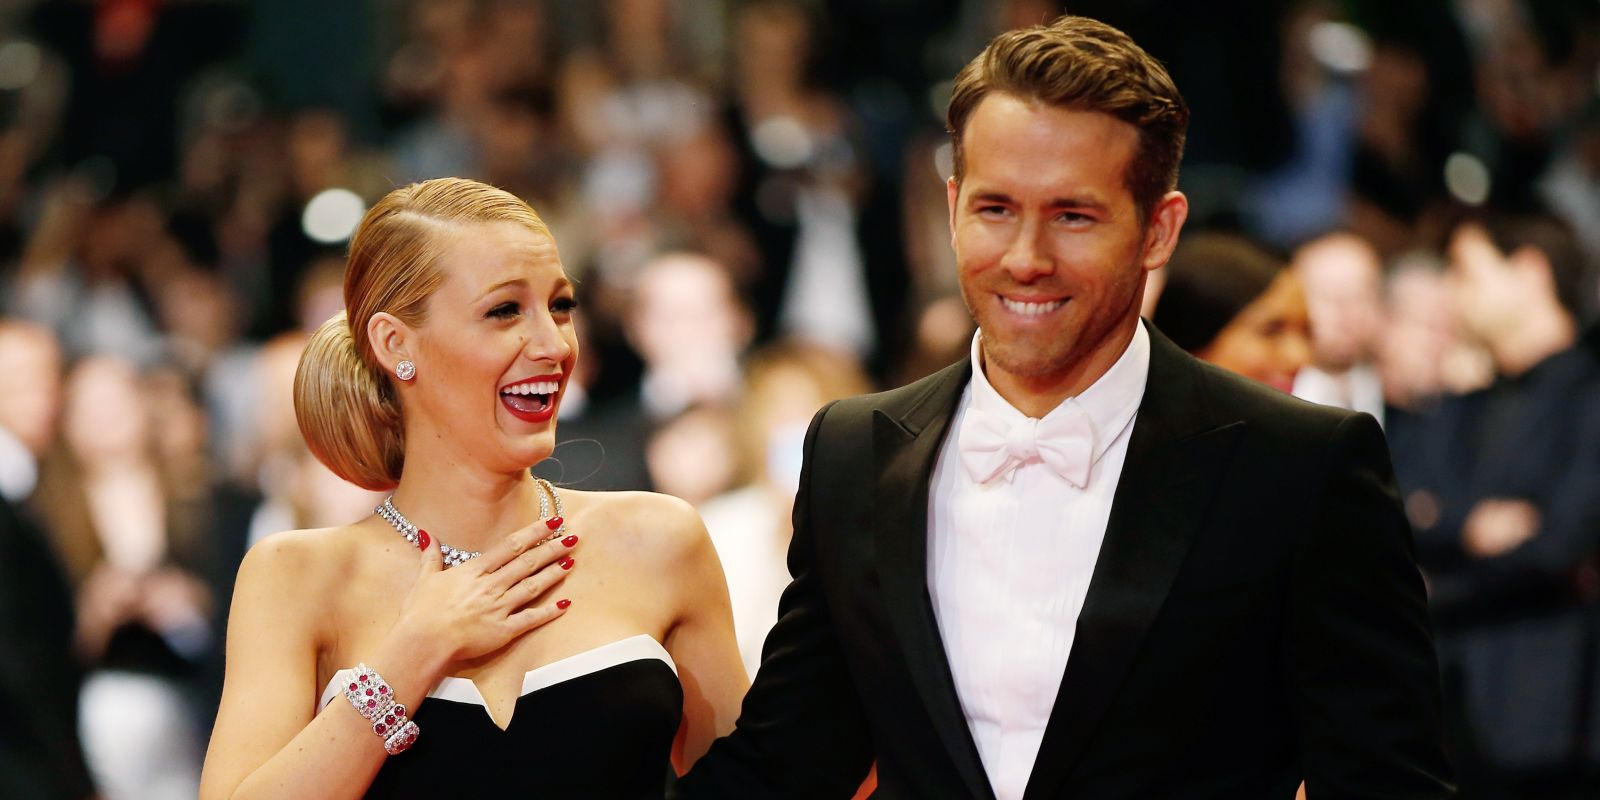 The funny story of Ryan Reynolds and Blake Lively's first date is straight out of a rom-com: https://t.co/r2ydTmpH48 https://t.co/6jt0WB0GmE